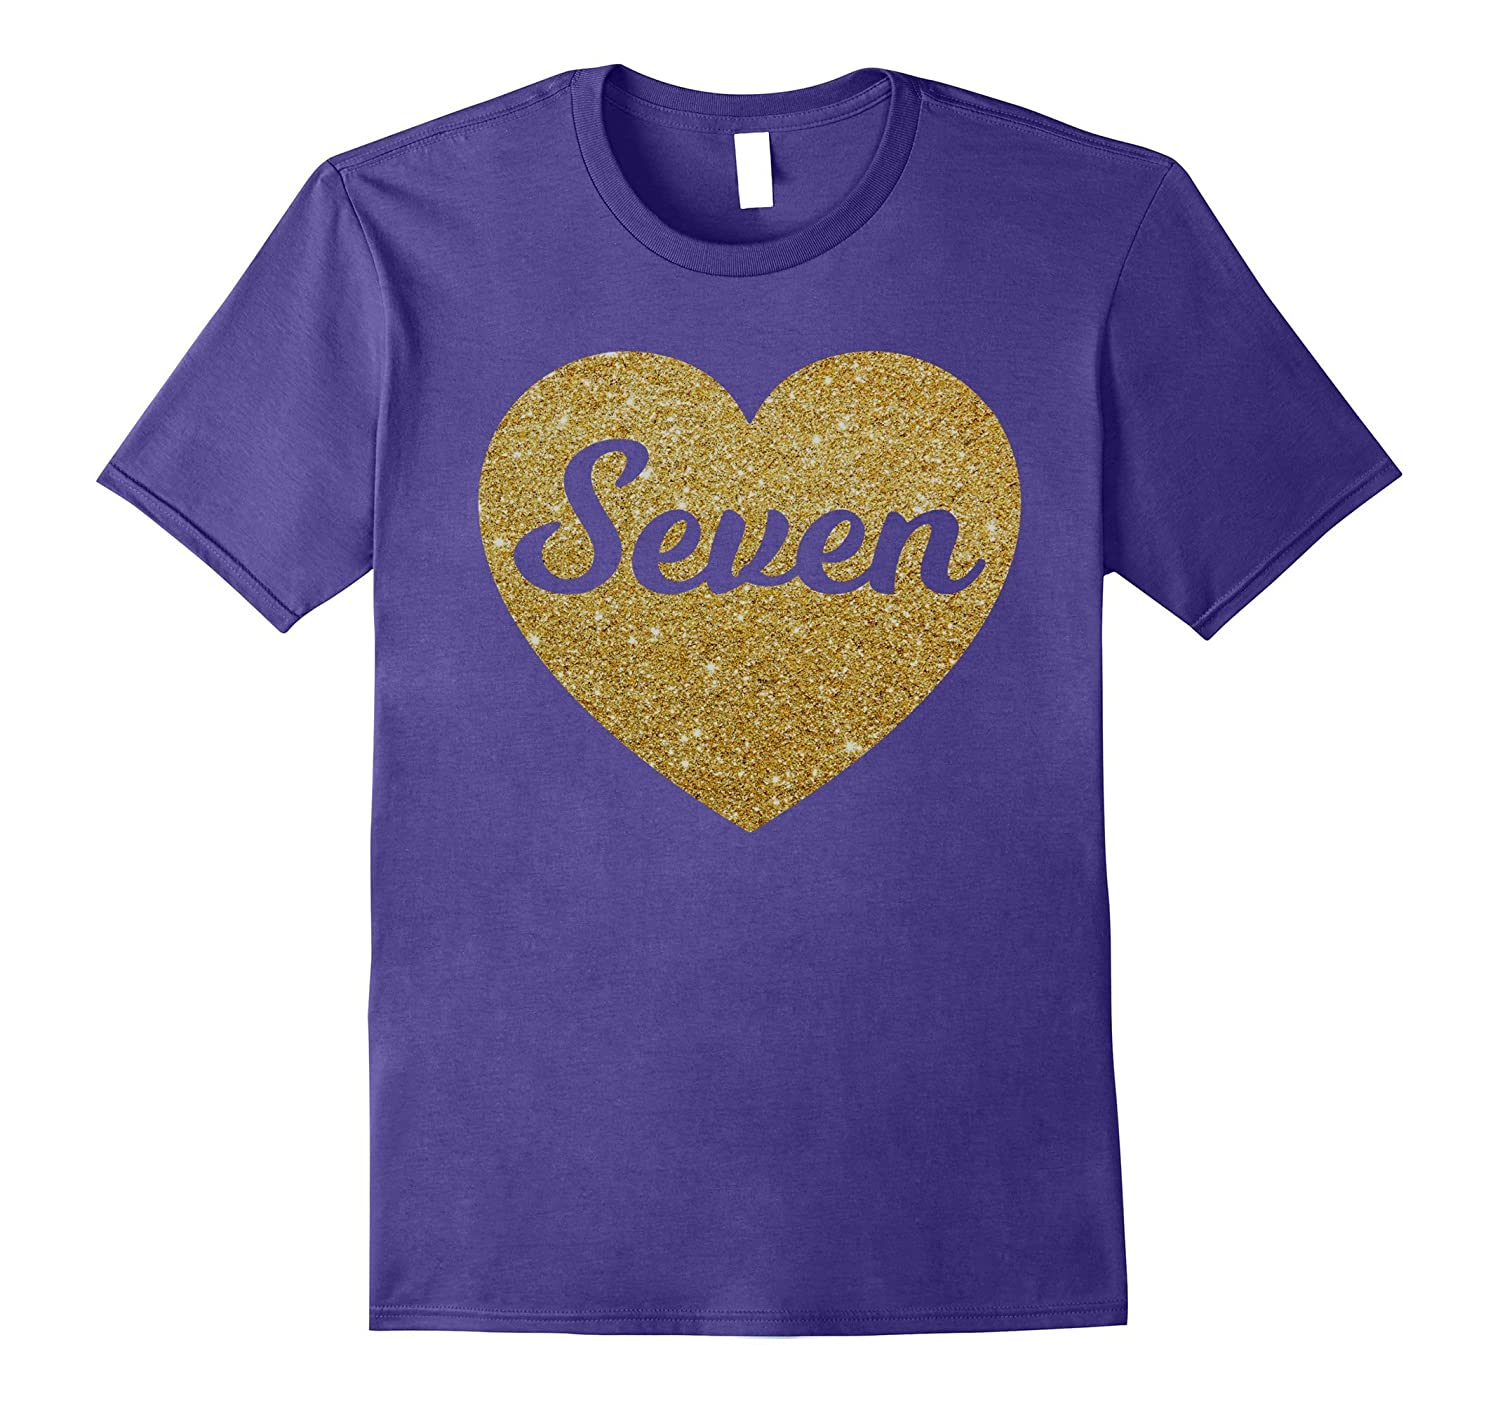 Seven - 7th Birthday Shirt for Girls, Gold Heart Design-T-Shirt